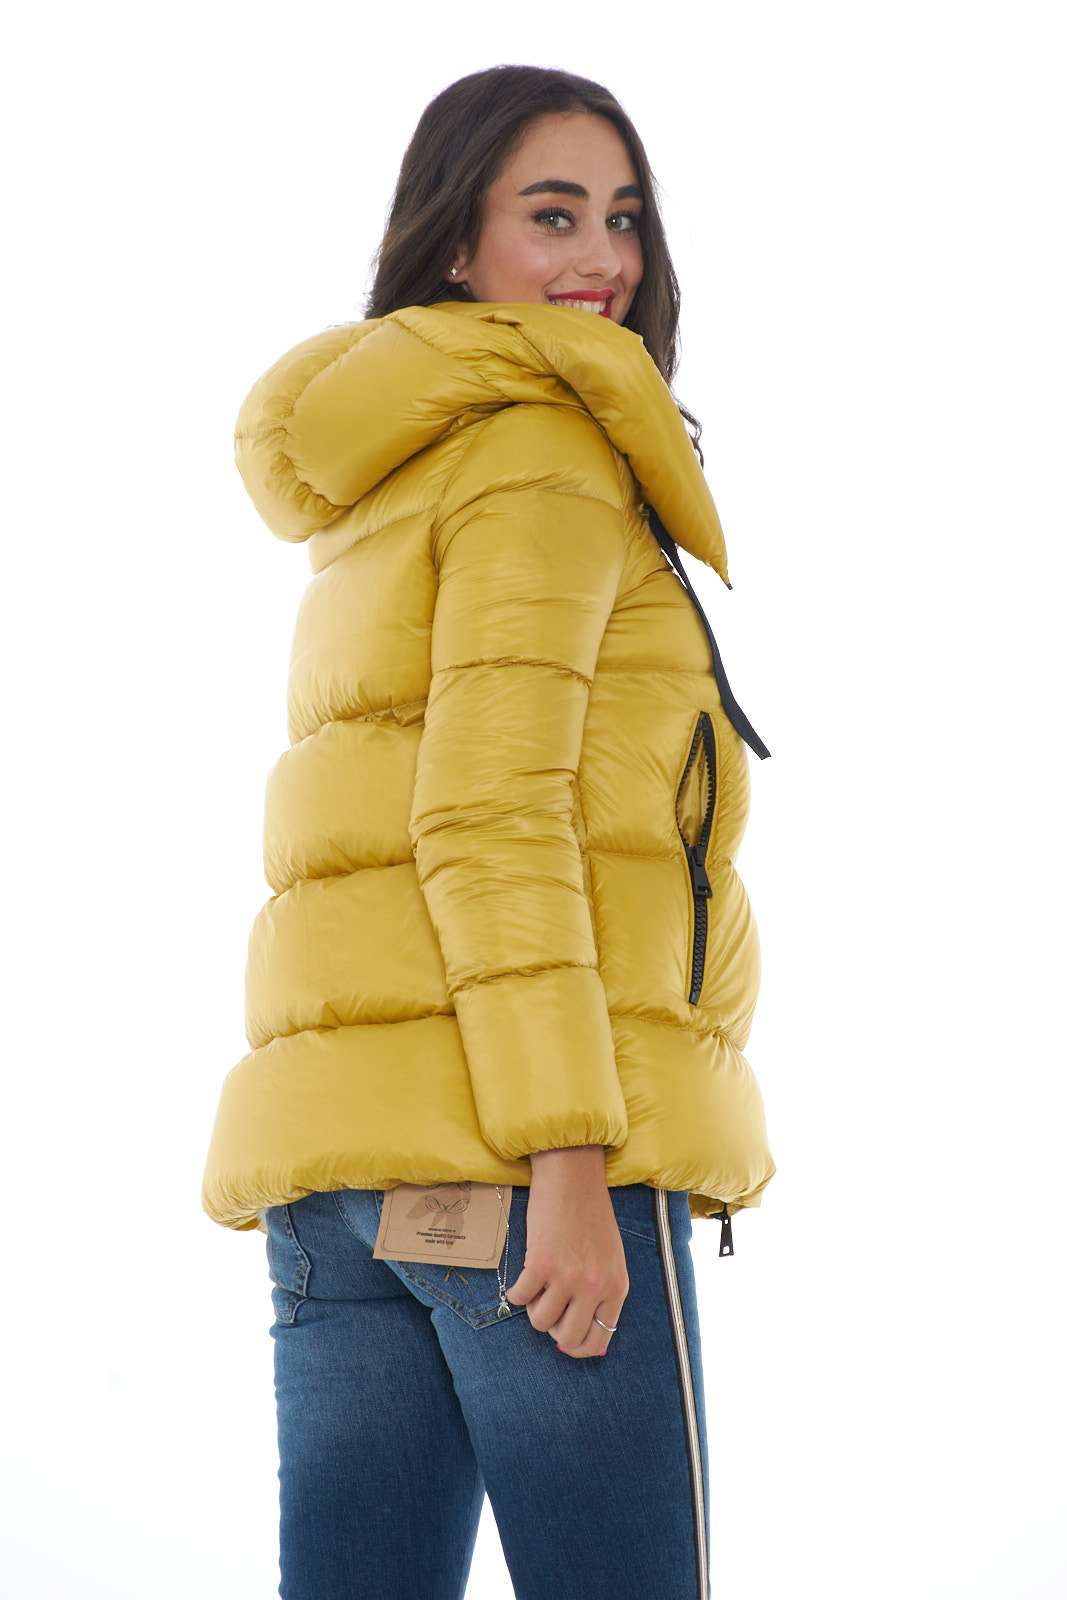 https://www.parmax.com/media/catalog/product/a/i/ai-outlet_parmax-piumino-donna-moncler-serin-c.jpg